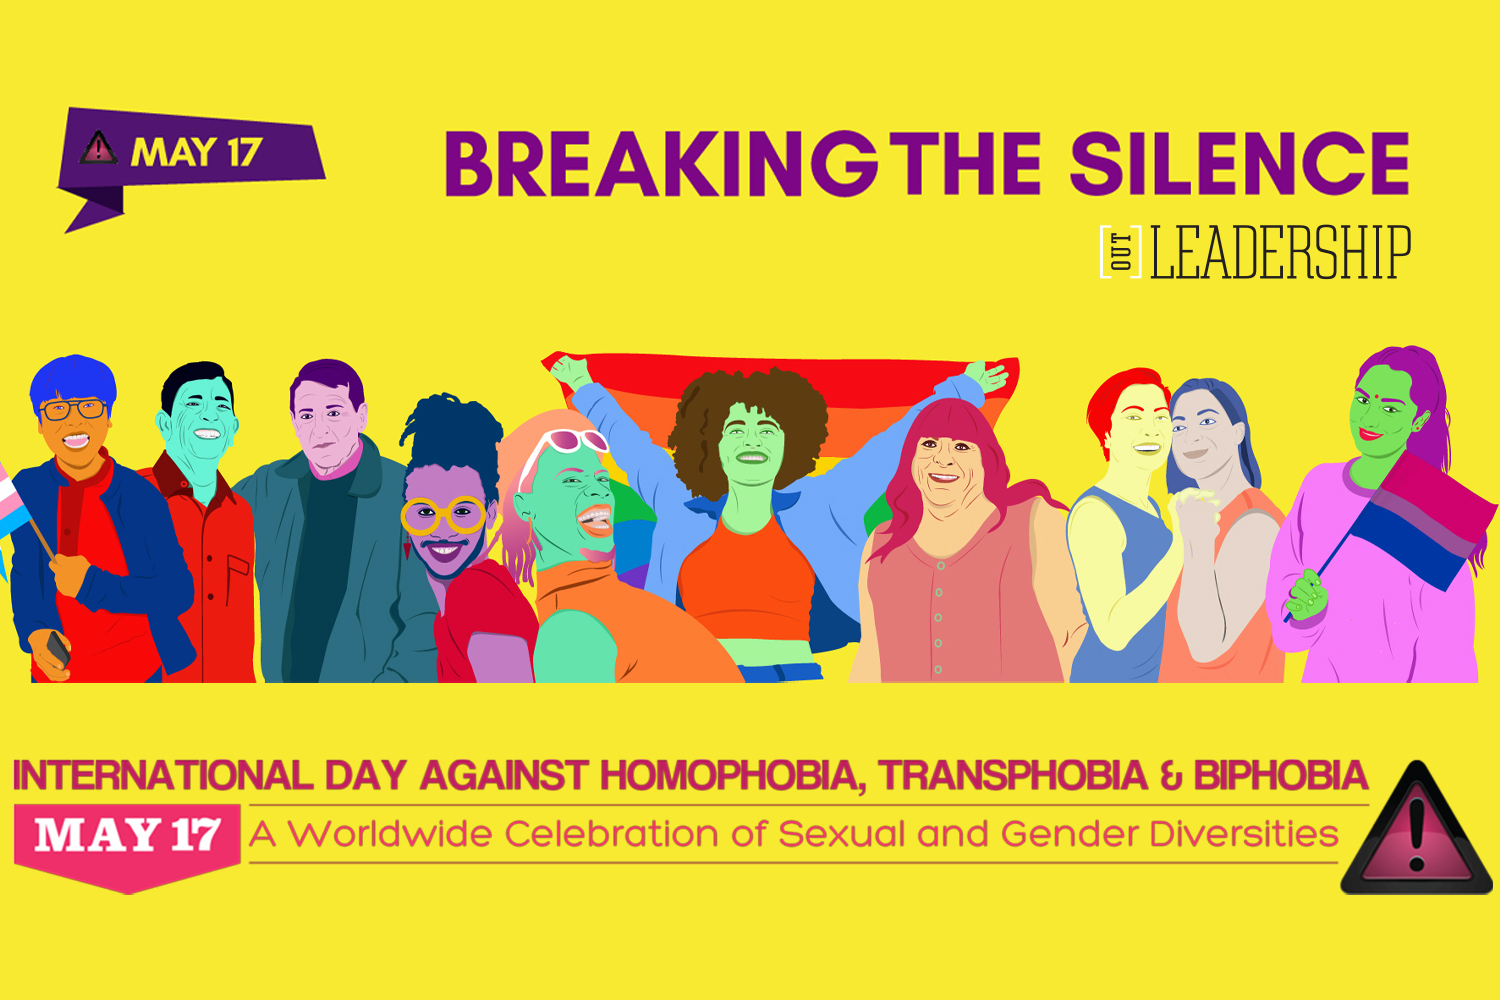 Marking the International Day Against Homophobia, Biphobia and Transphobia (IDAHOBIT)